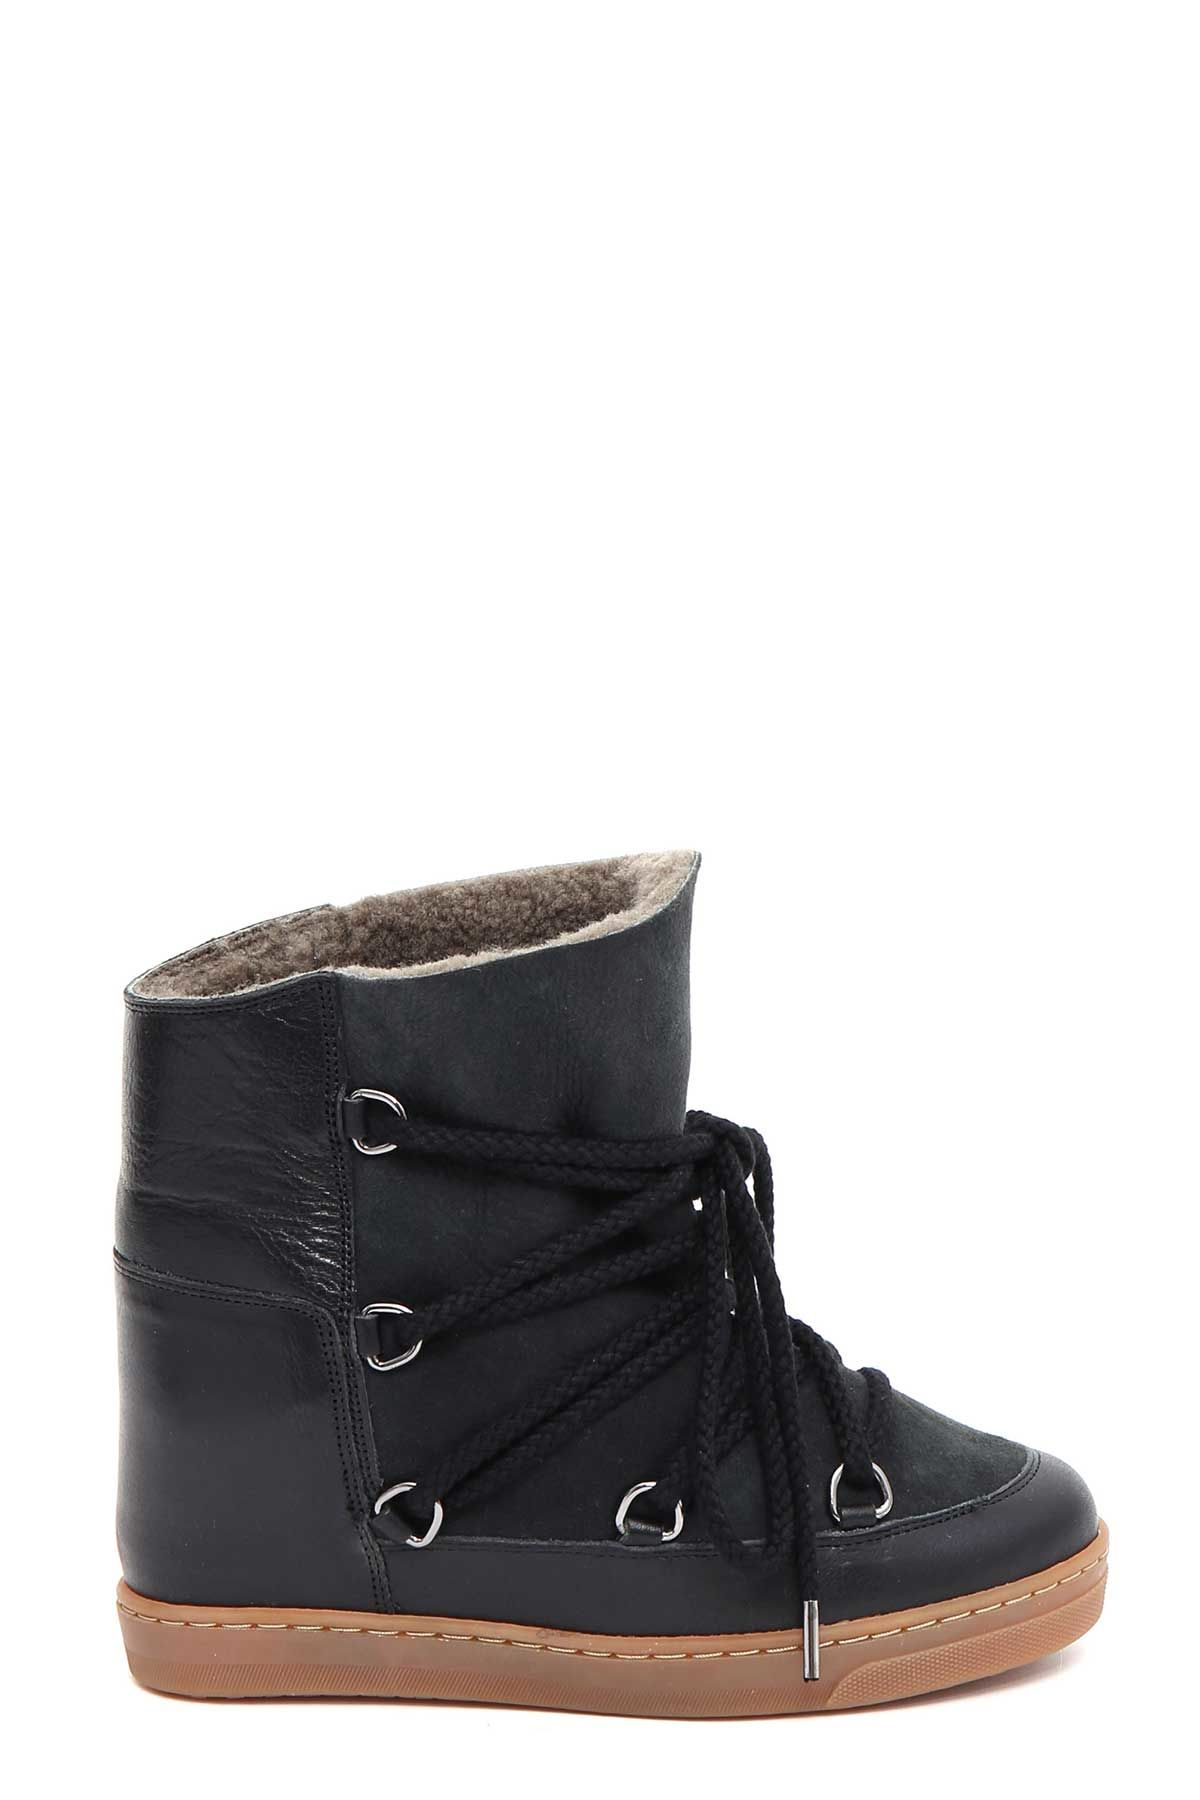 isabel marant isabel marant 39 nowles 39 snow boot sneaker nero women 39 s boots italist. Black Bedroom Furniture Sets. Home Design Ideas